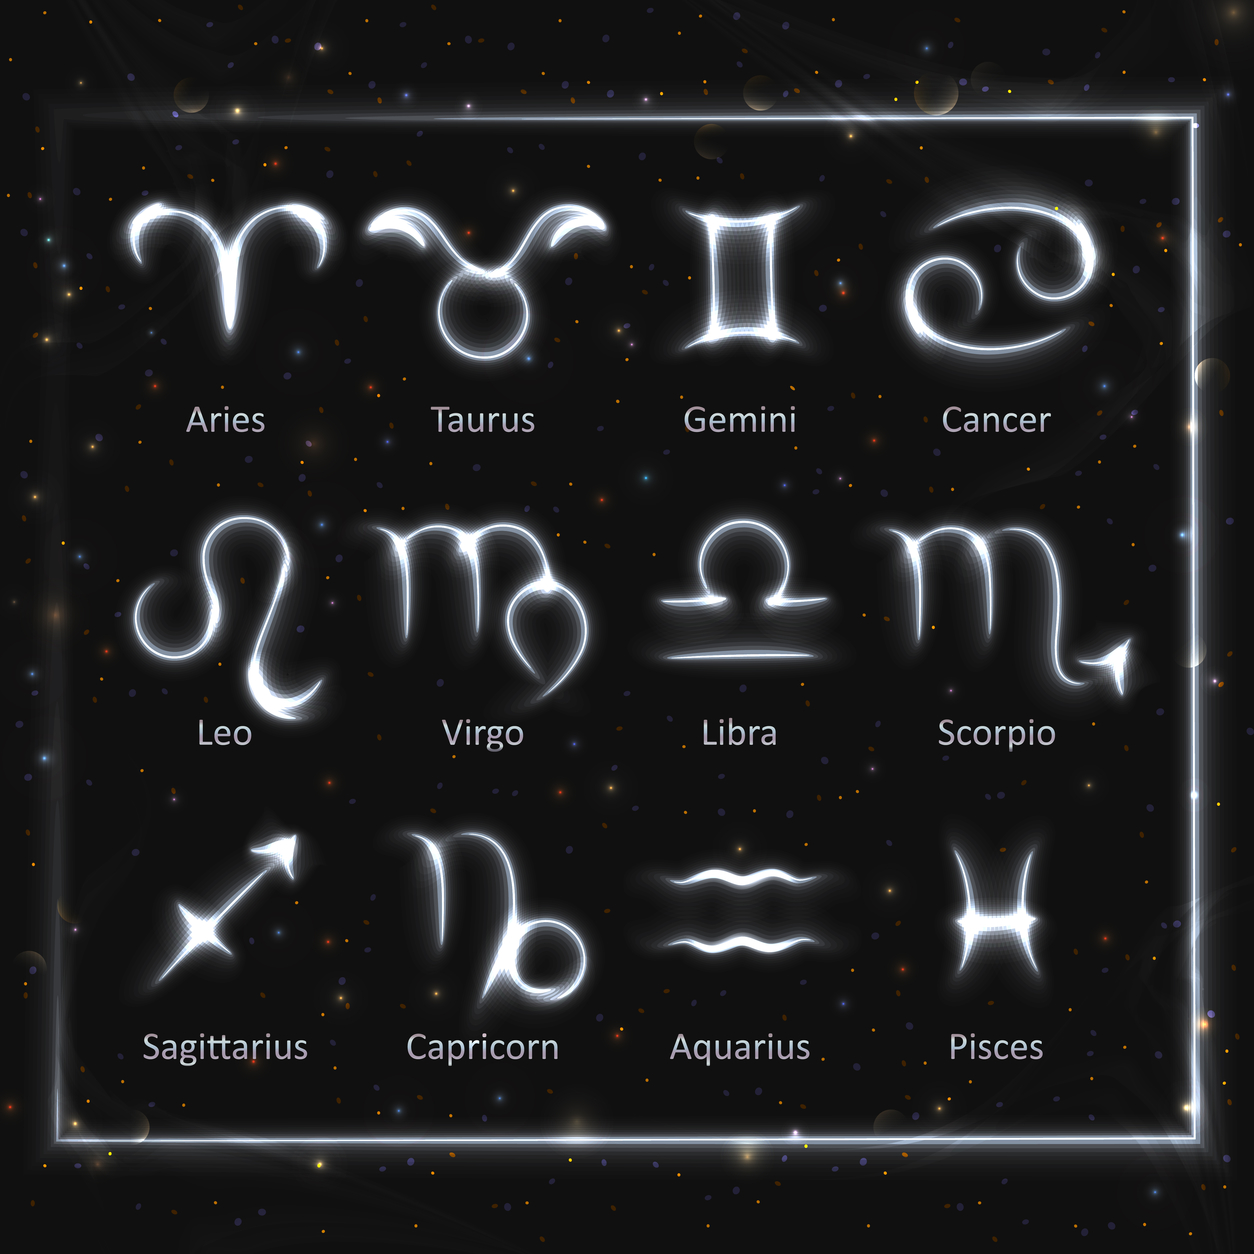 The zodiac signs and their corresponding constellations [Image source: Shutterstock]